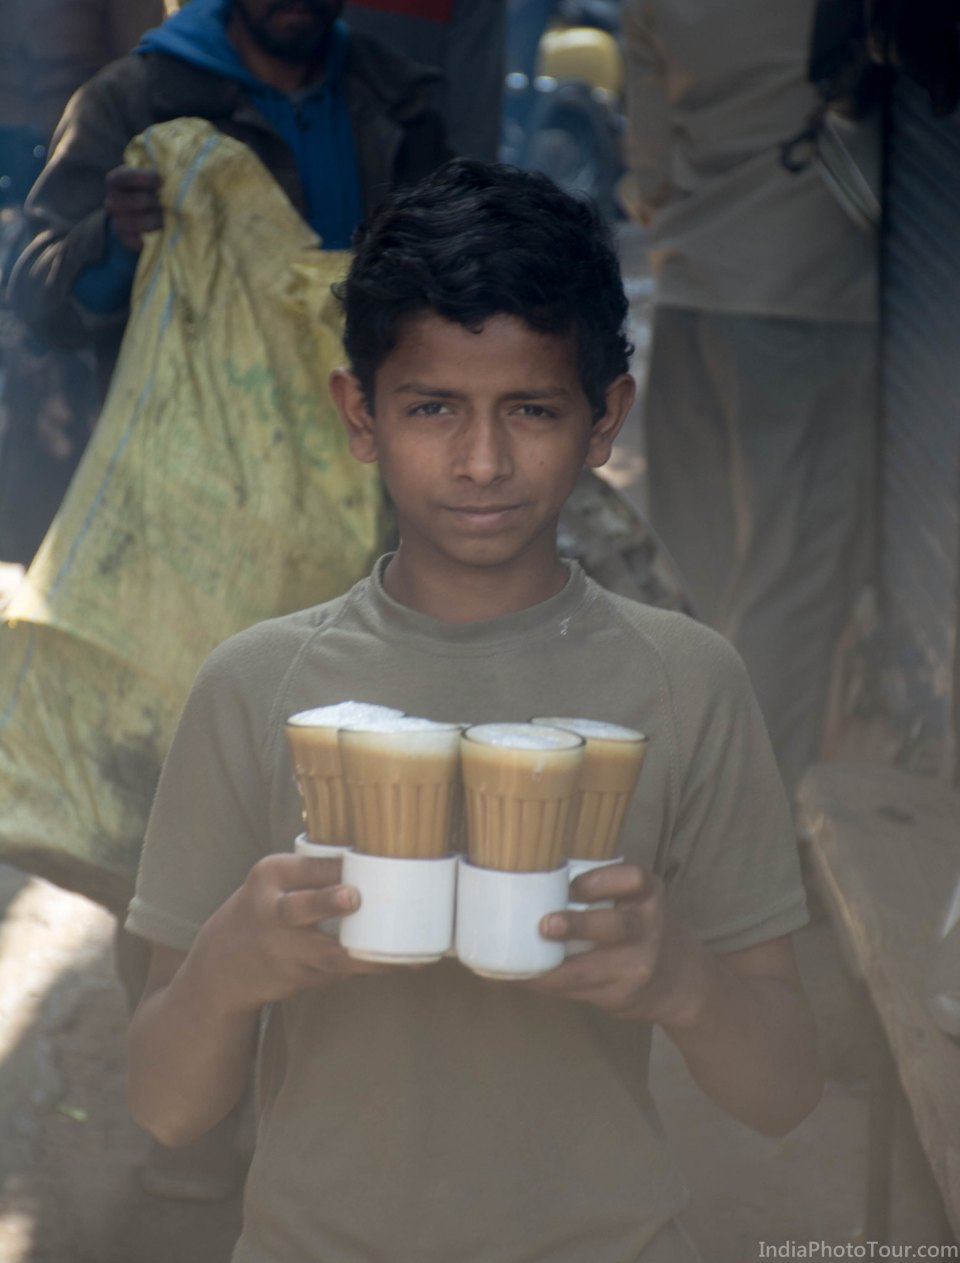 A boy in the street carrying tea